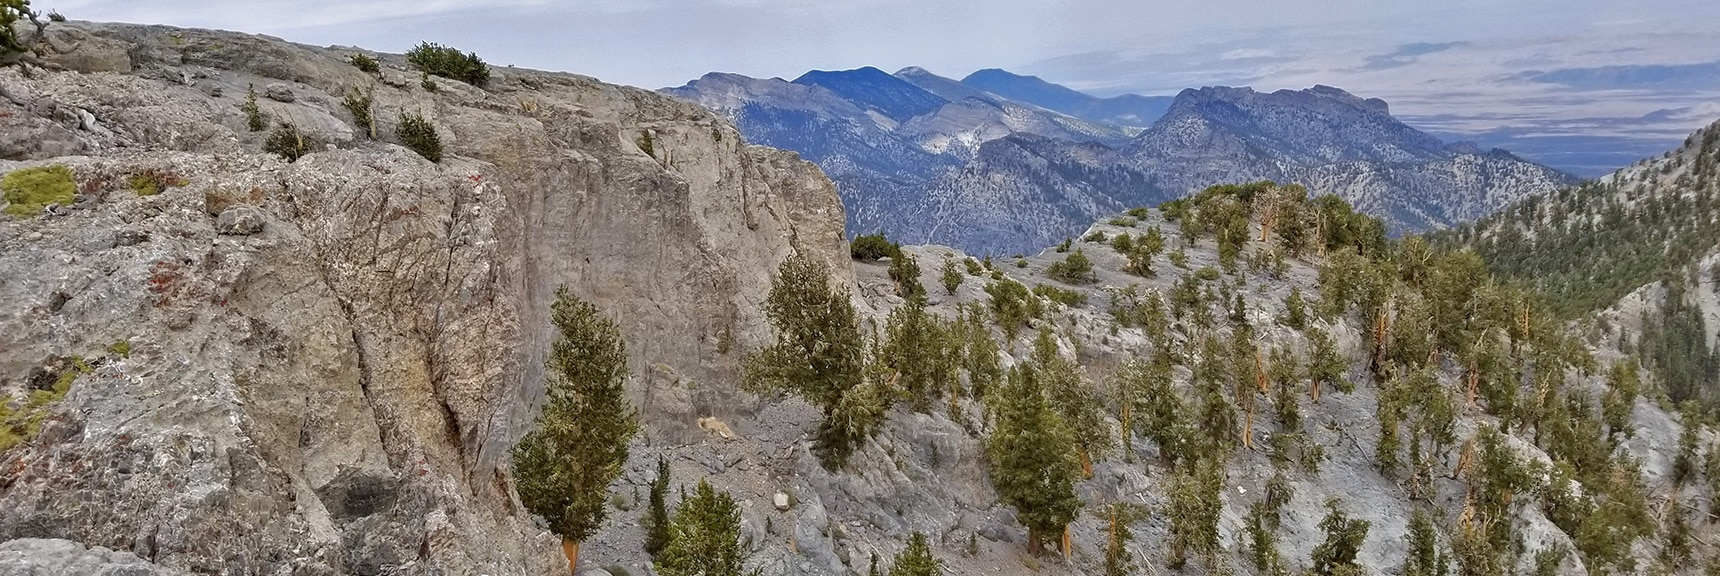 View North from Eastern Summit Cliffs, Potential Summit Approach Route   Mummy Mountain Northern Rim Overlook, Spring Mountain Wilderness, Nevada